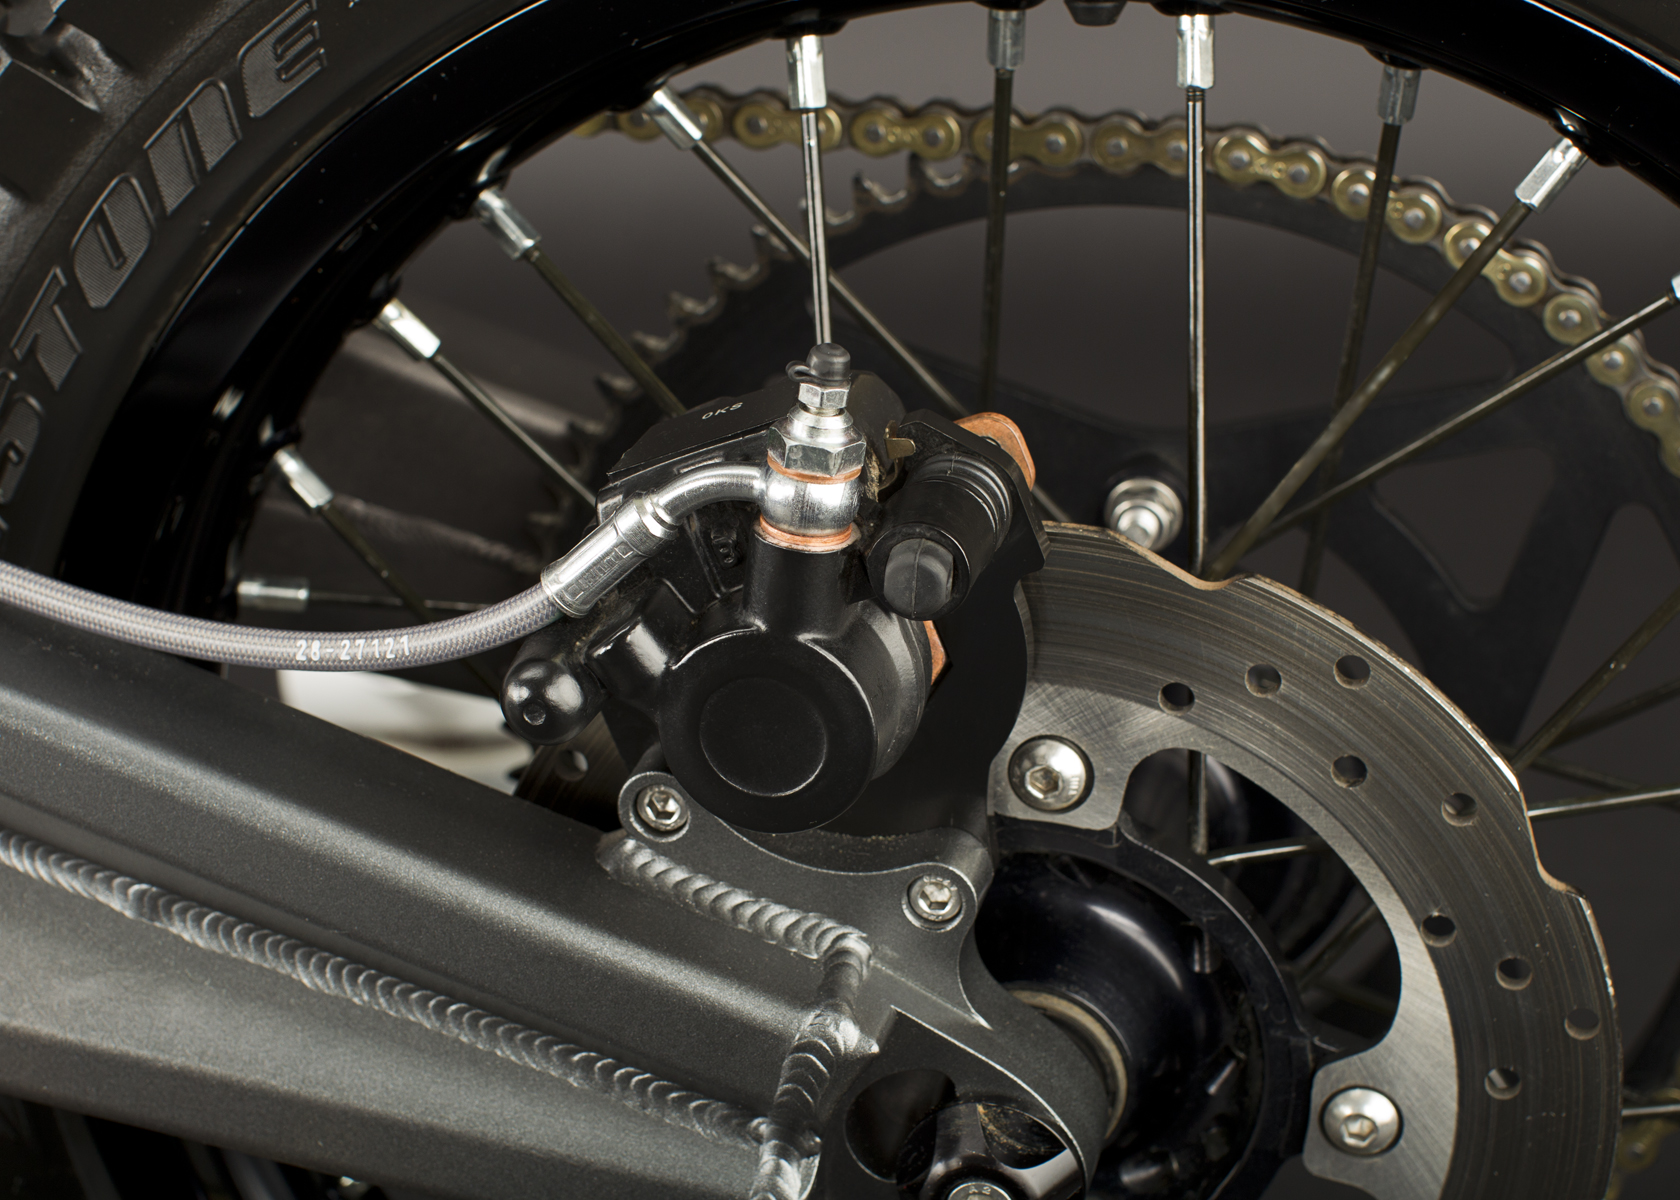 2011 Zero MX Electric Motorcycle: Back Brake